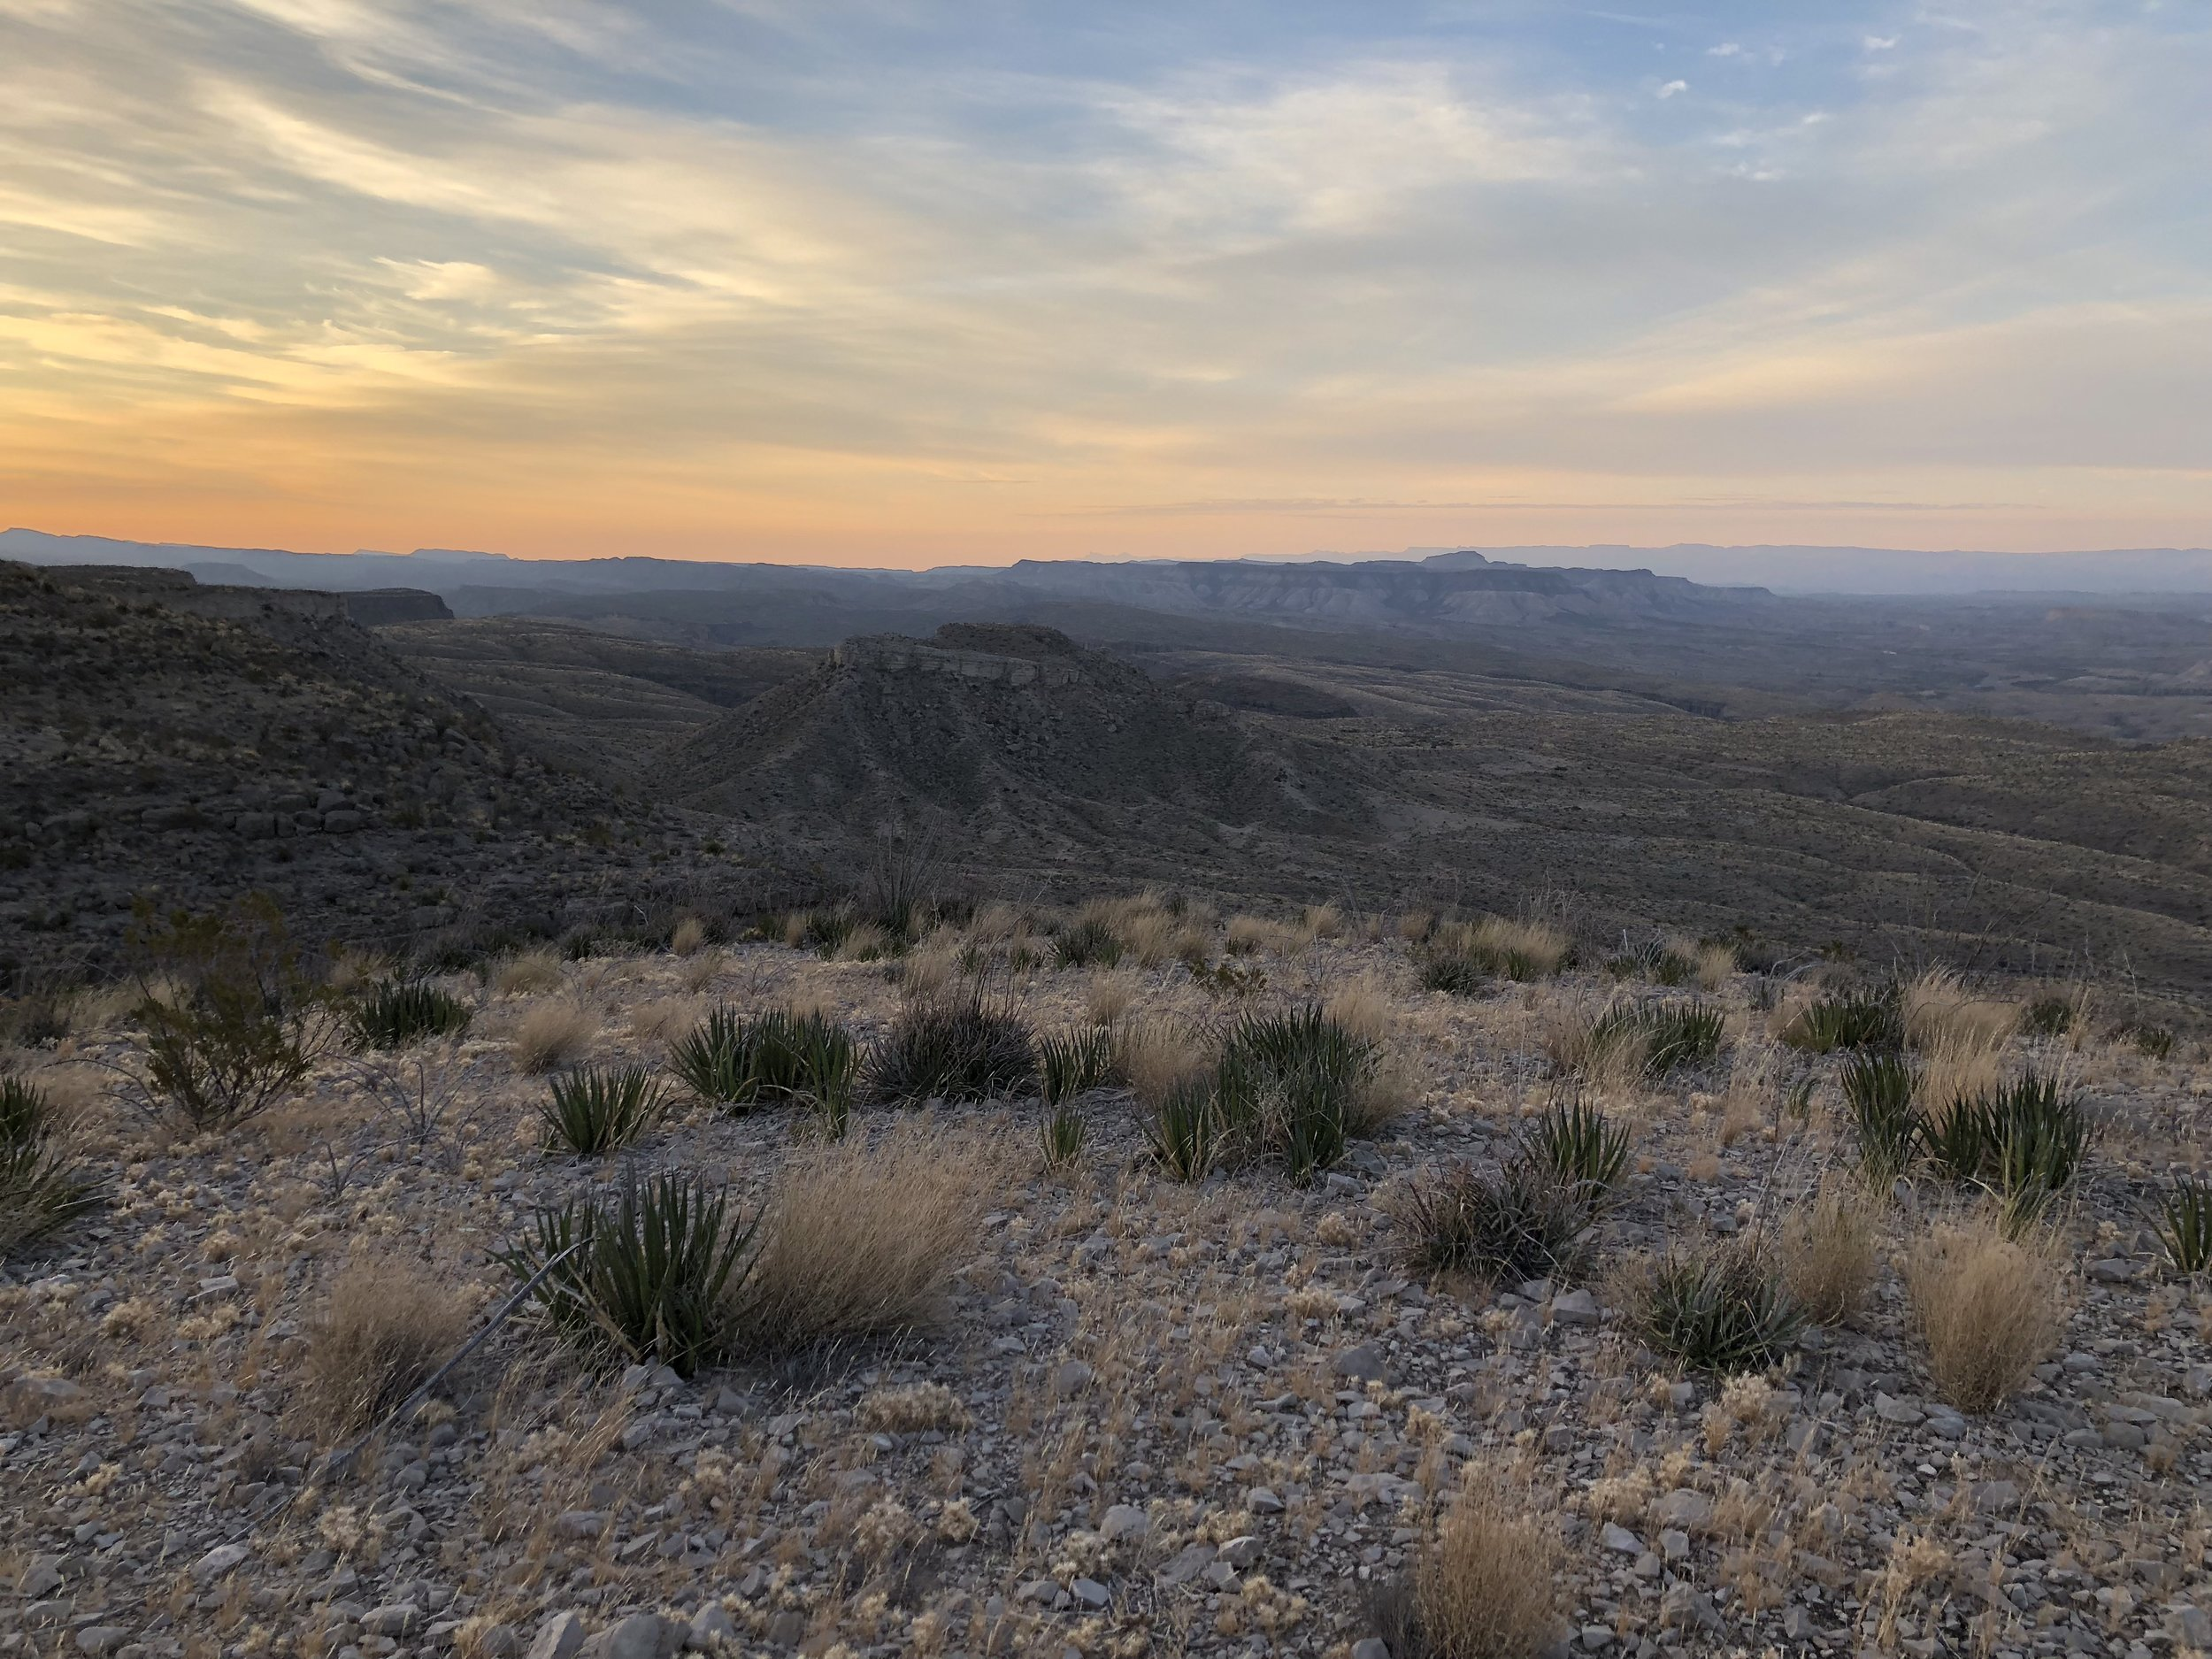 Support - The Big Bend Region is home to the largest tracks of Public land in Texas. Support the organizations that protect it.